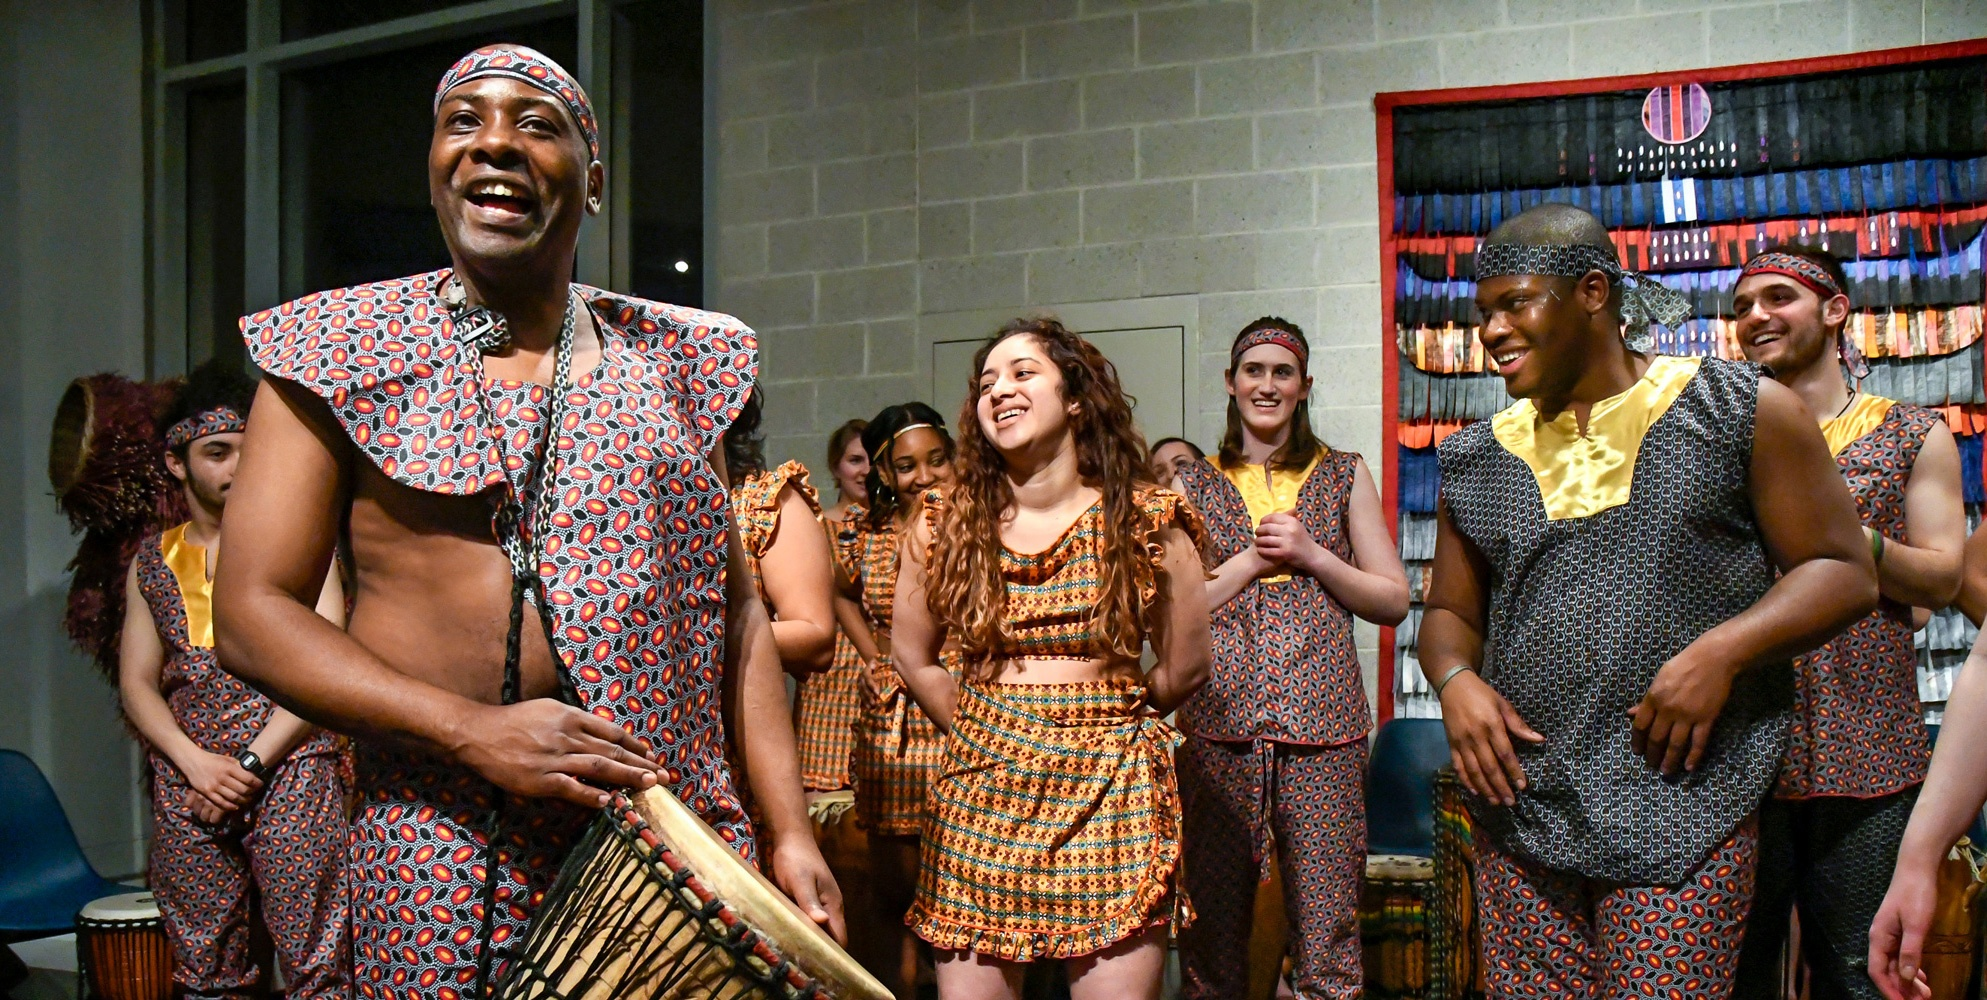 A middle-aged, black male in colorful, patterned clothing holds a bongo standing in front of a group of people wearing similar clothing.